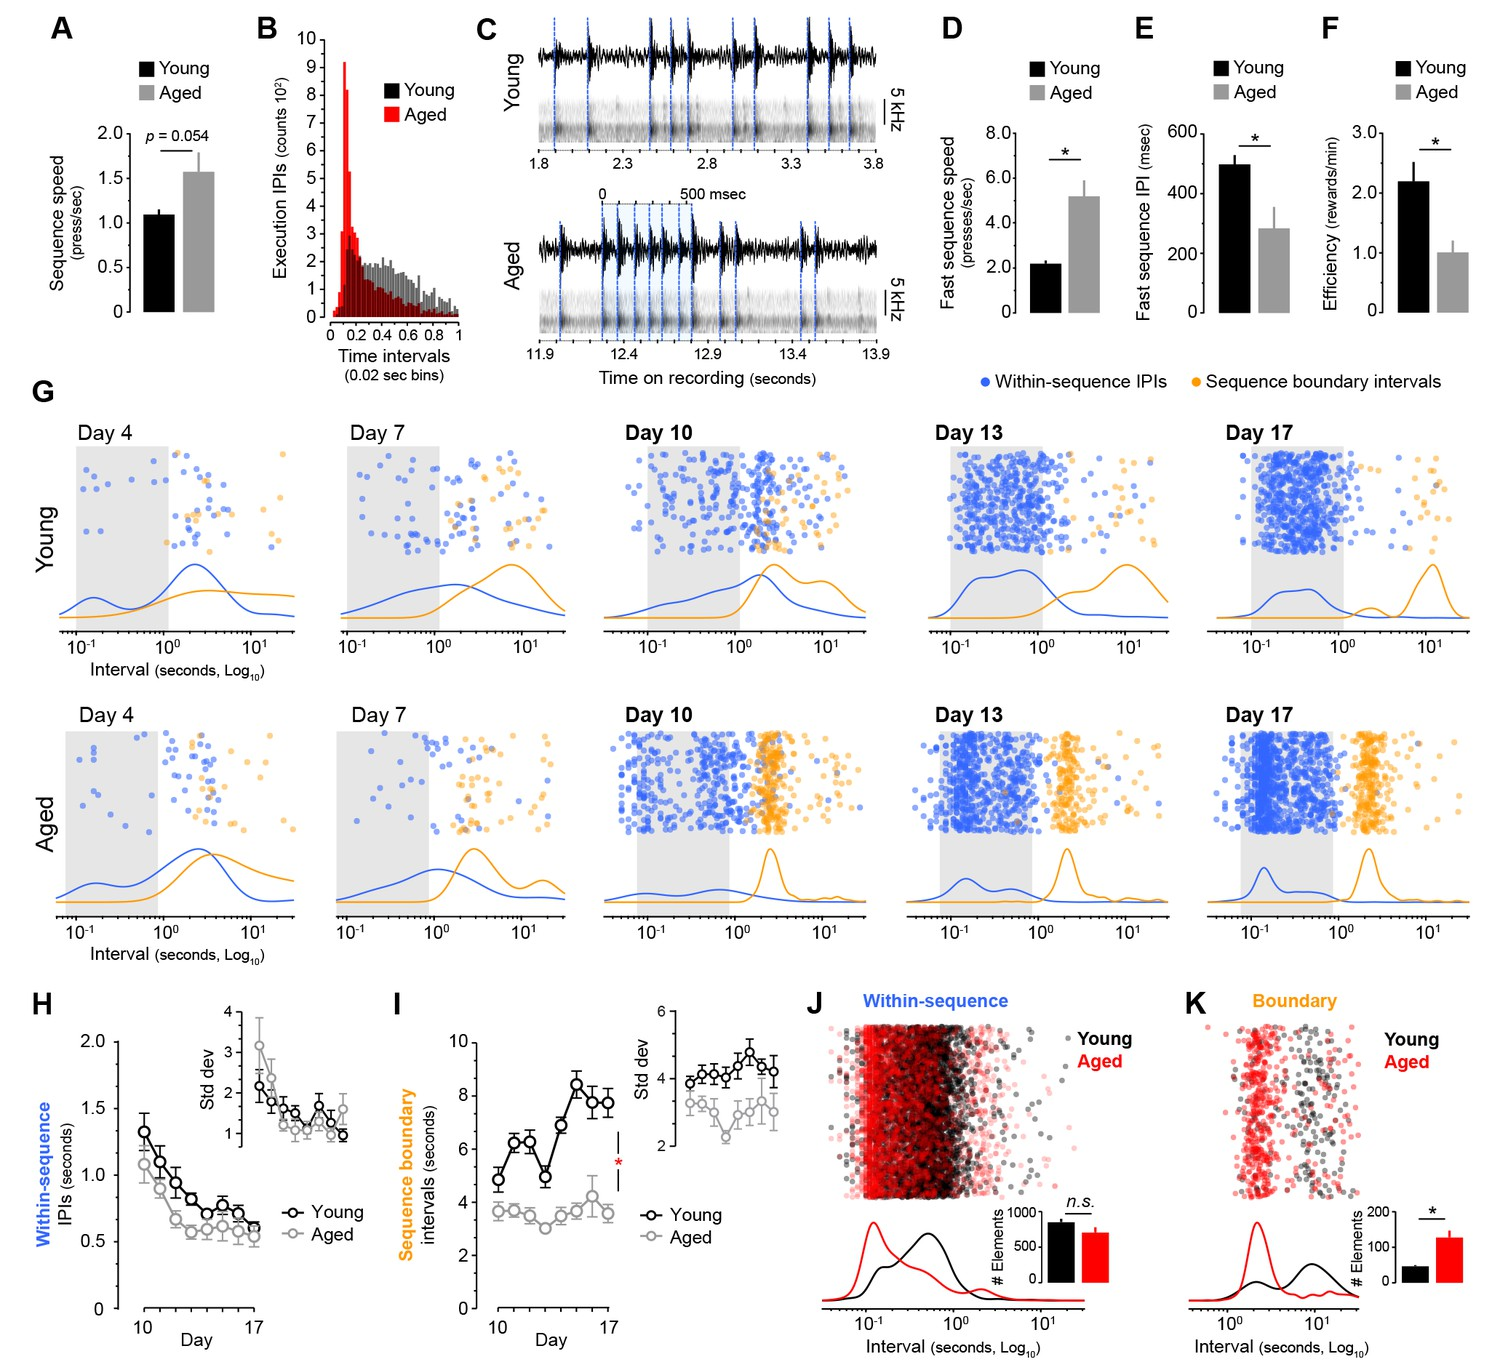 A Corticostriatal Deficit Promotes Temporal Distortion Of Automatic Music Box Circuit This Produces 10 Different Tones And By Aged Mice Produce Ultrafast Sequences Aberrant Chunking